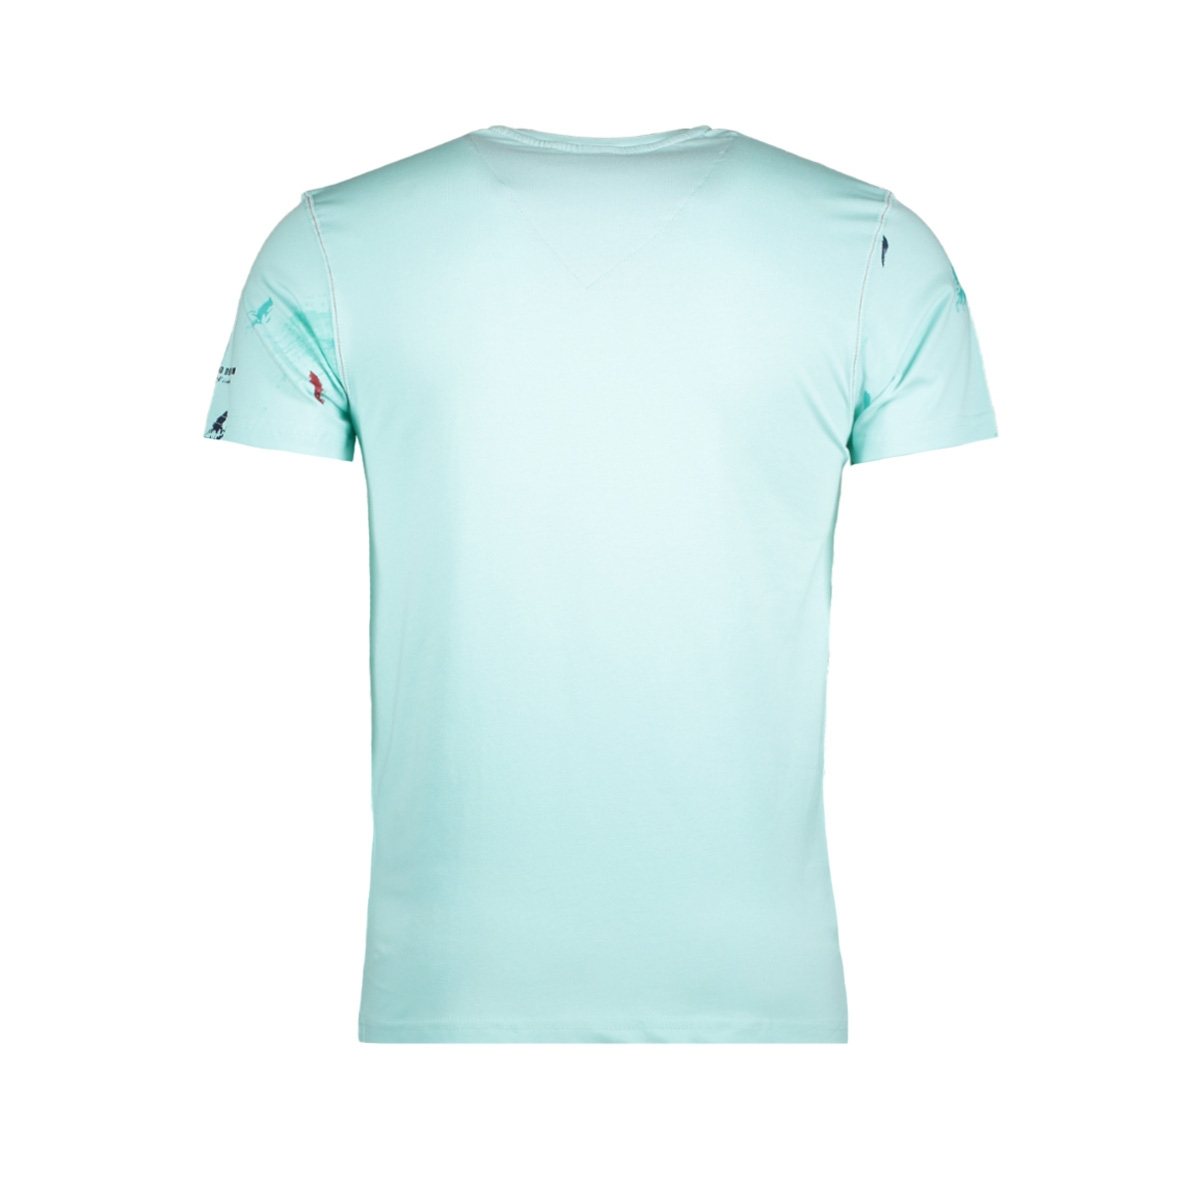 13877 gabbiano t-shirt light mint